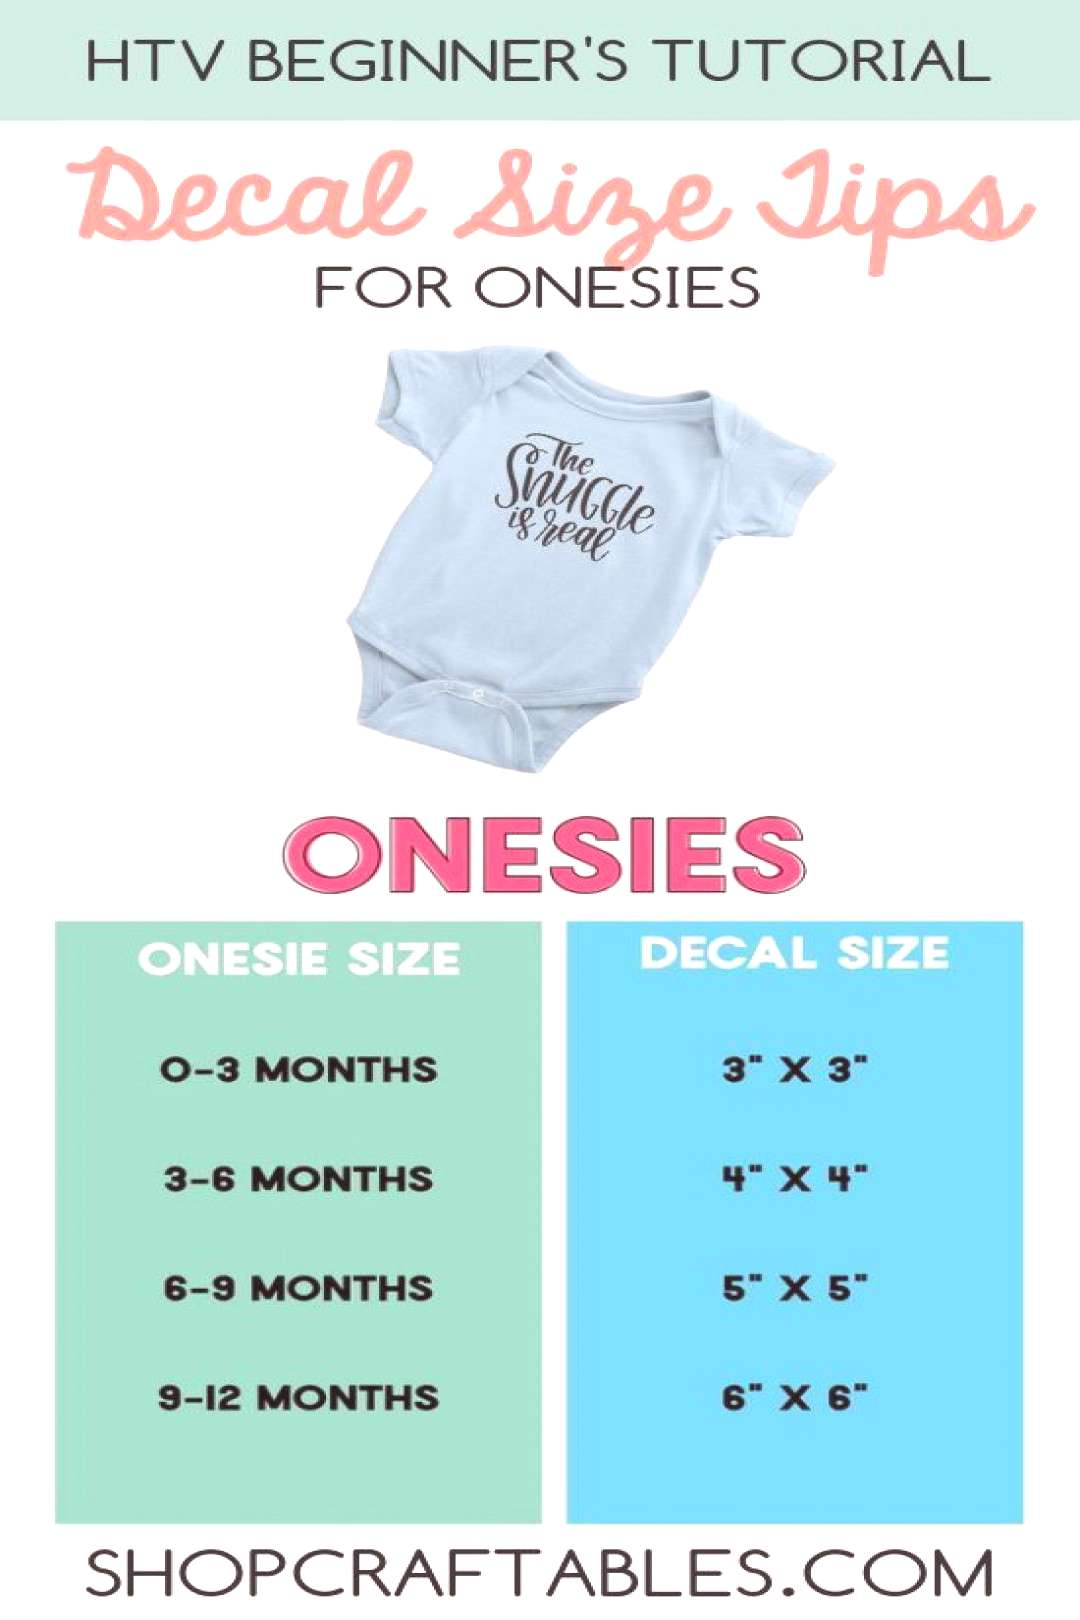 Beginners Tutorial Decal Size Tips for T-Shirts, Totes and Onesies - These sizes are a great sta